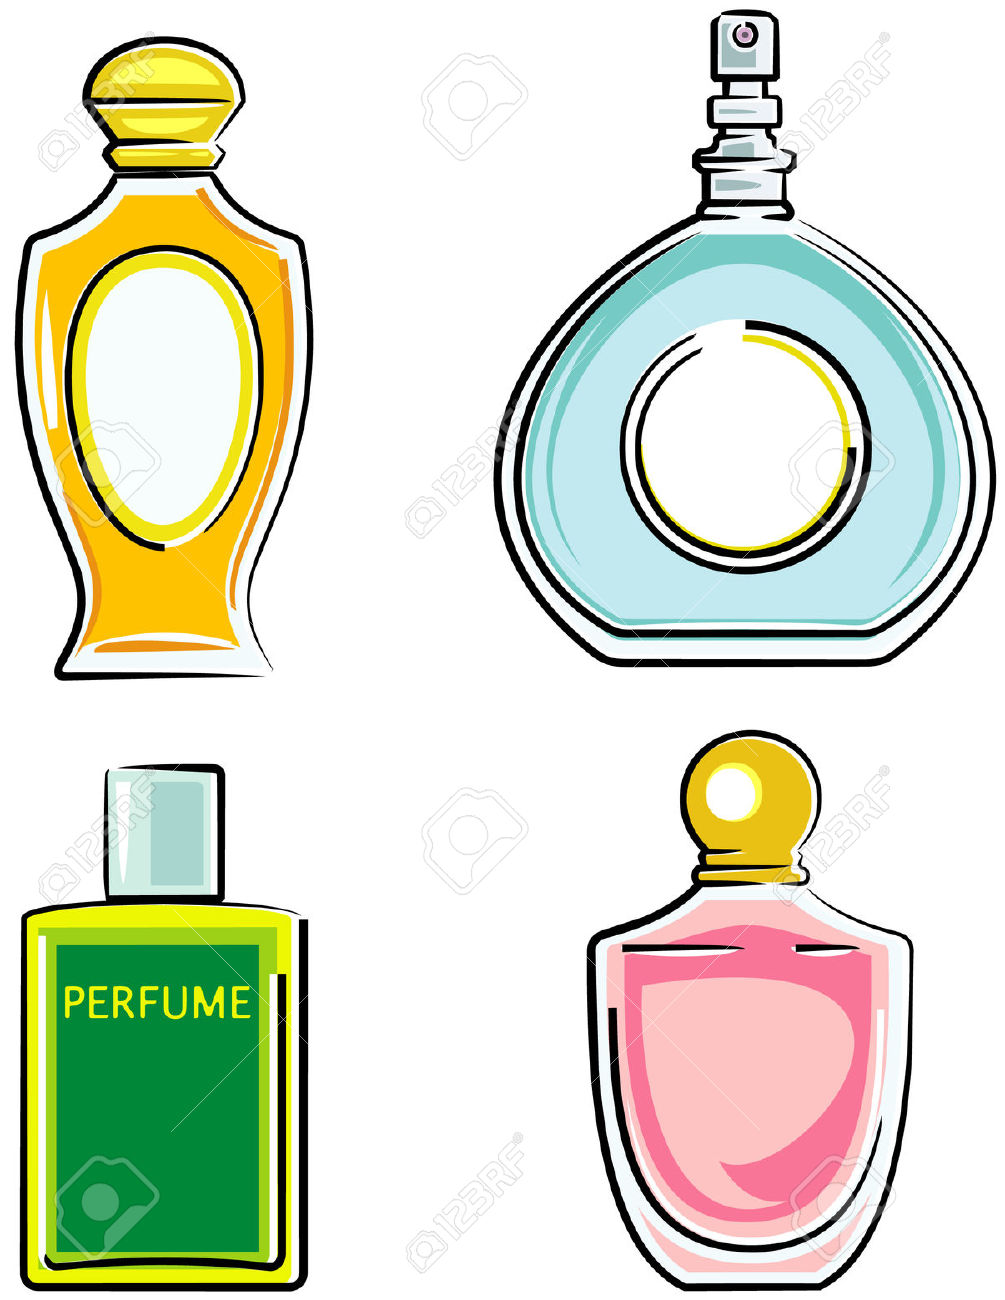 Perfume Bottles (Vector) Royalty Free Cliparts, Vectors, And Stock.